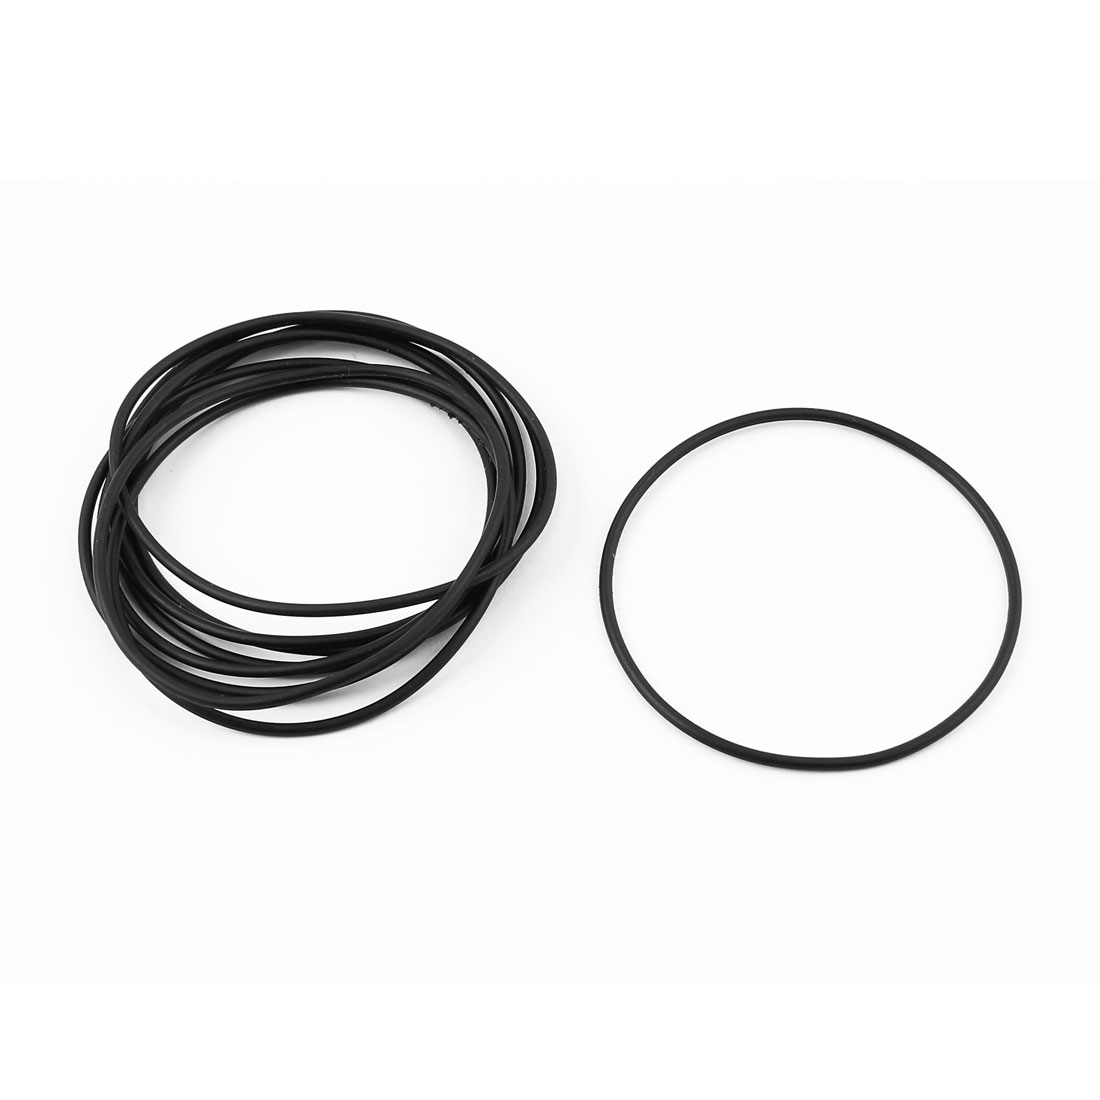 Equipment Engine Oil Cooler Adapter Rubber O Ring Seal Black 9pcs